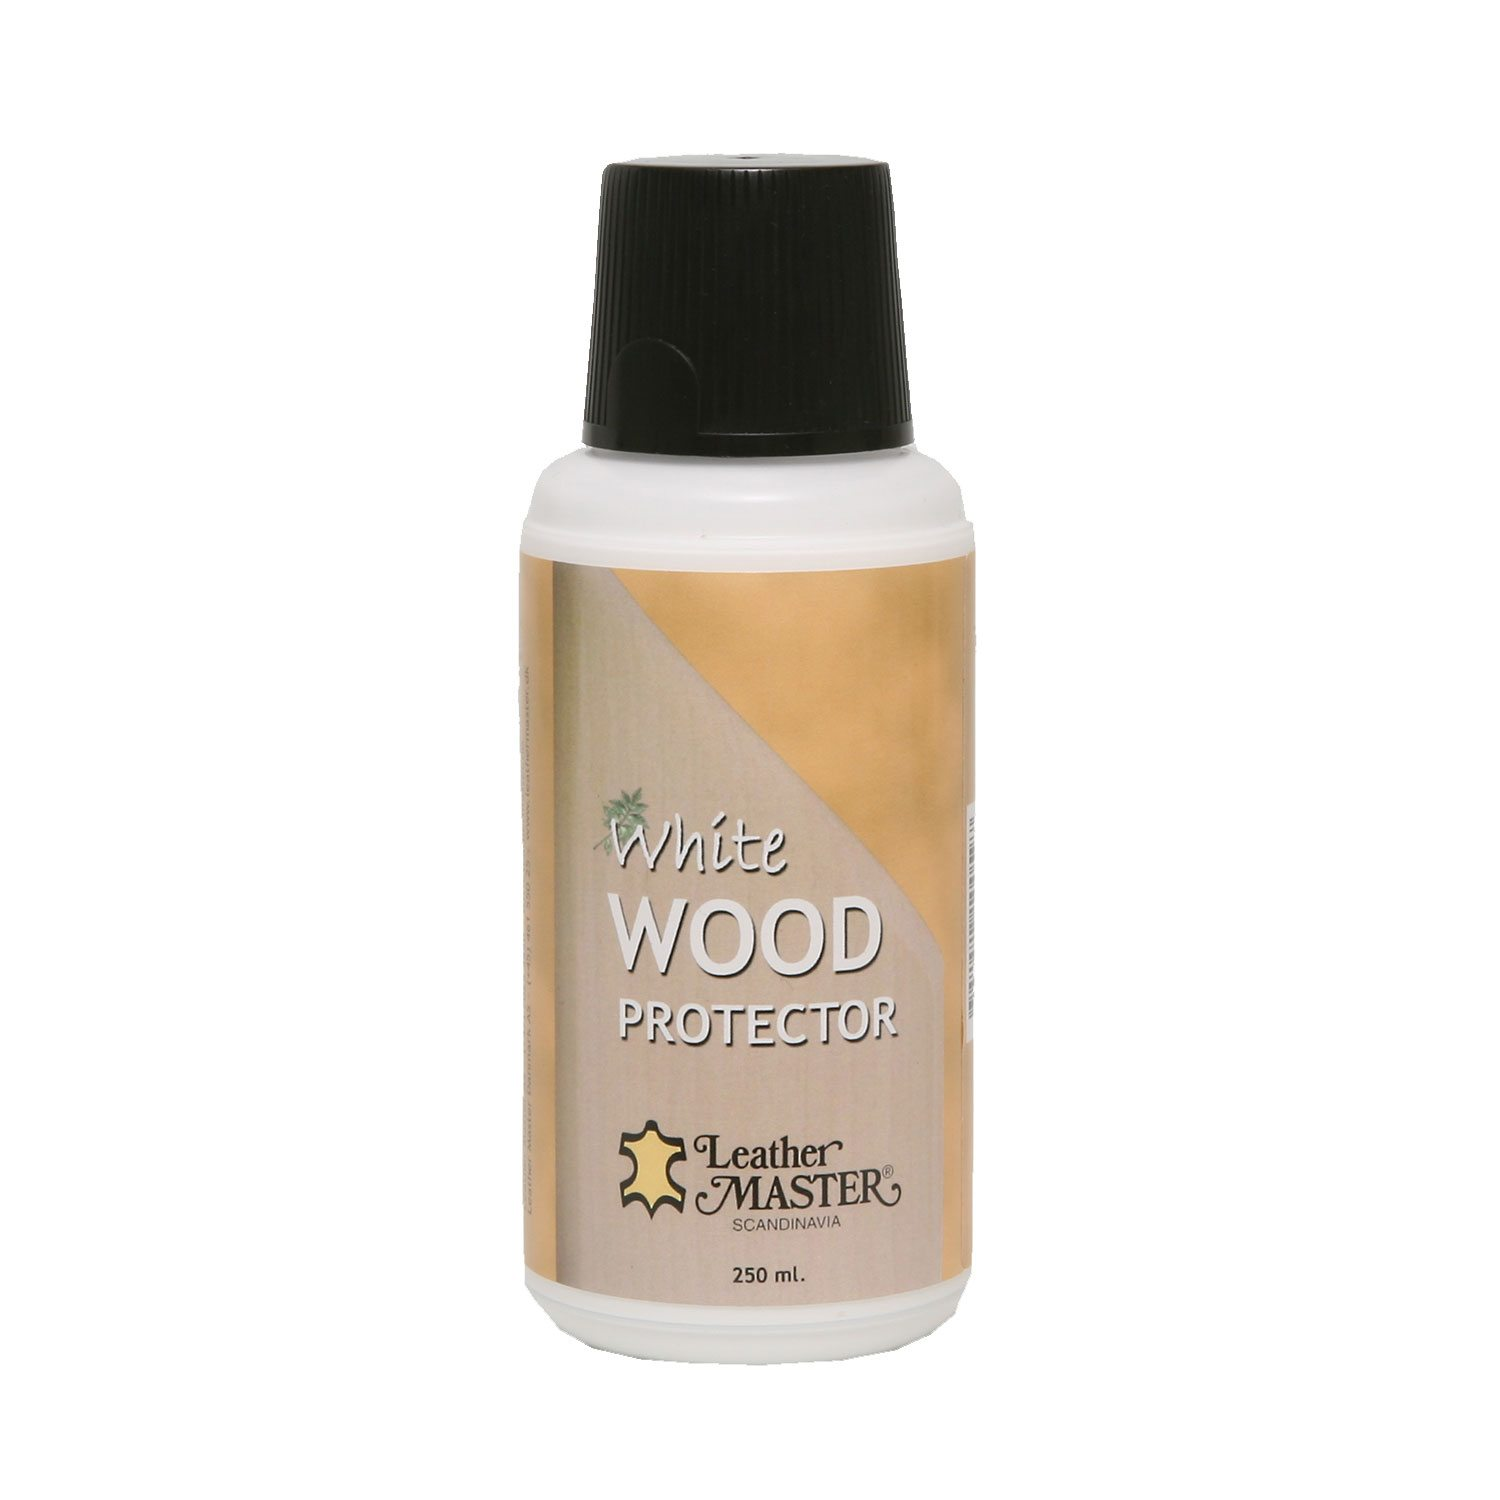 White Wood Protector (Vb)